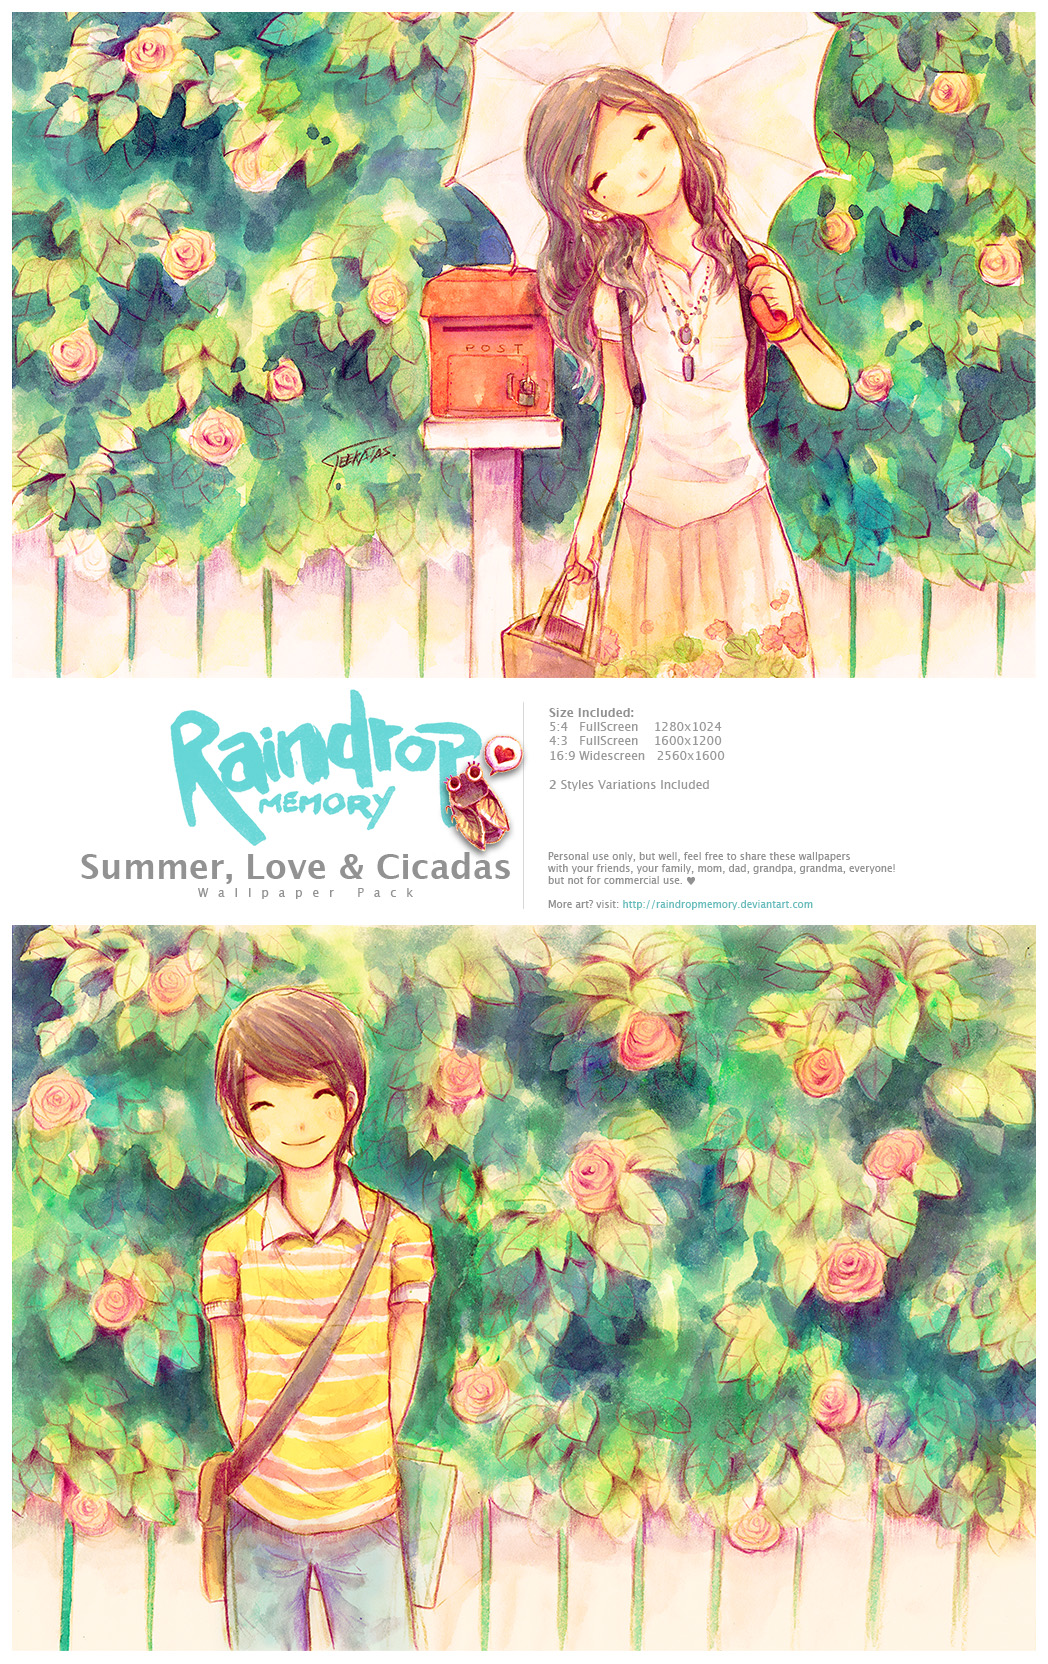 Summer, Love +Cicadas WallPack